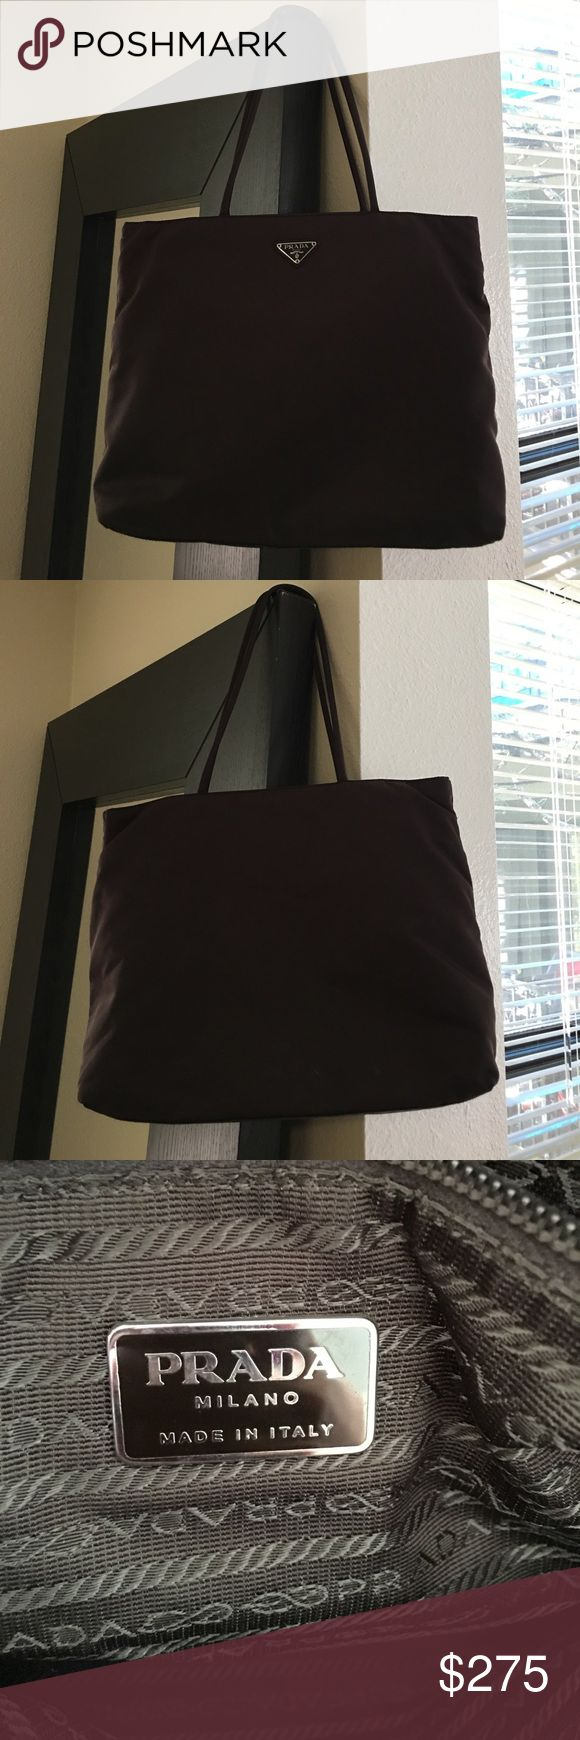 "Authentic Vintage Prada Nylon Tote Bag EUC! Gorgeous authentic Prada bag from the 90's in chocolate brown. 14""W x12""H multiple compartments and lightweight. Prada Bags Totes"